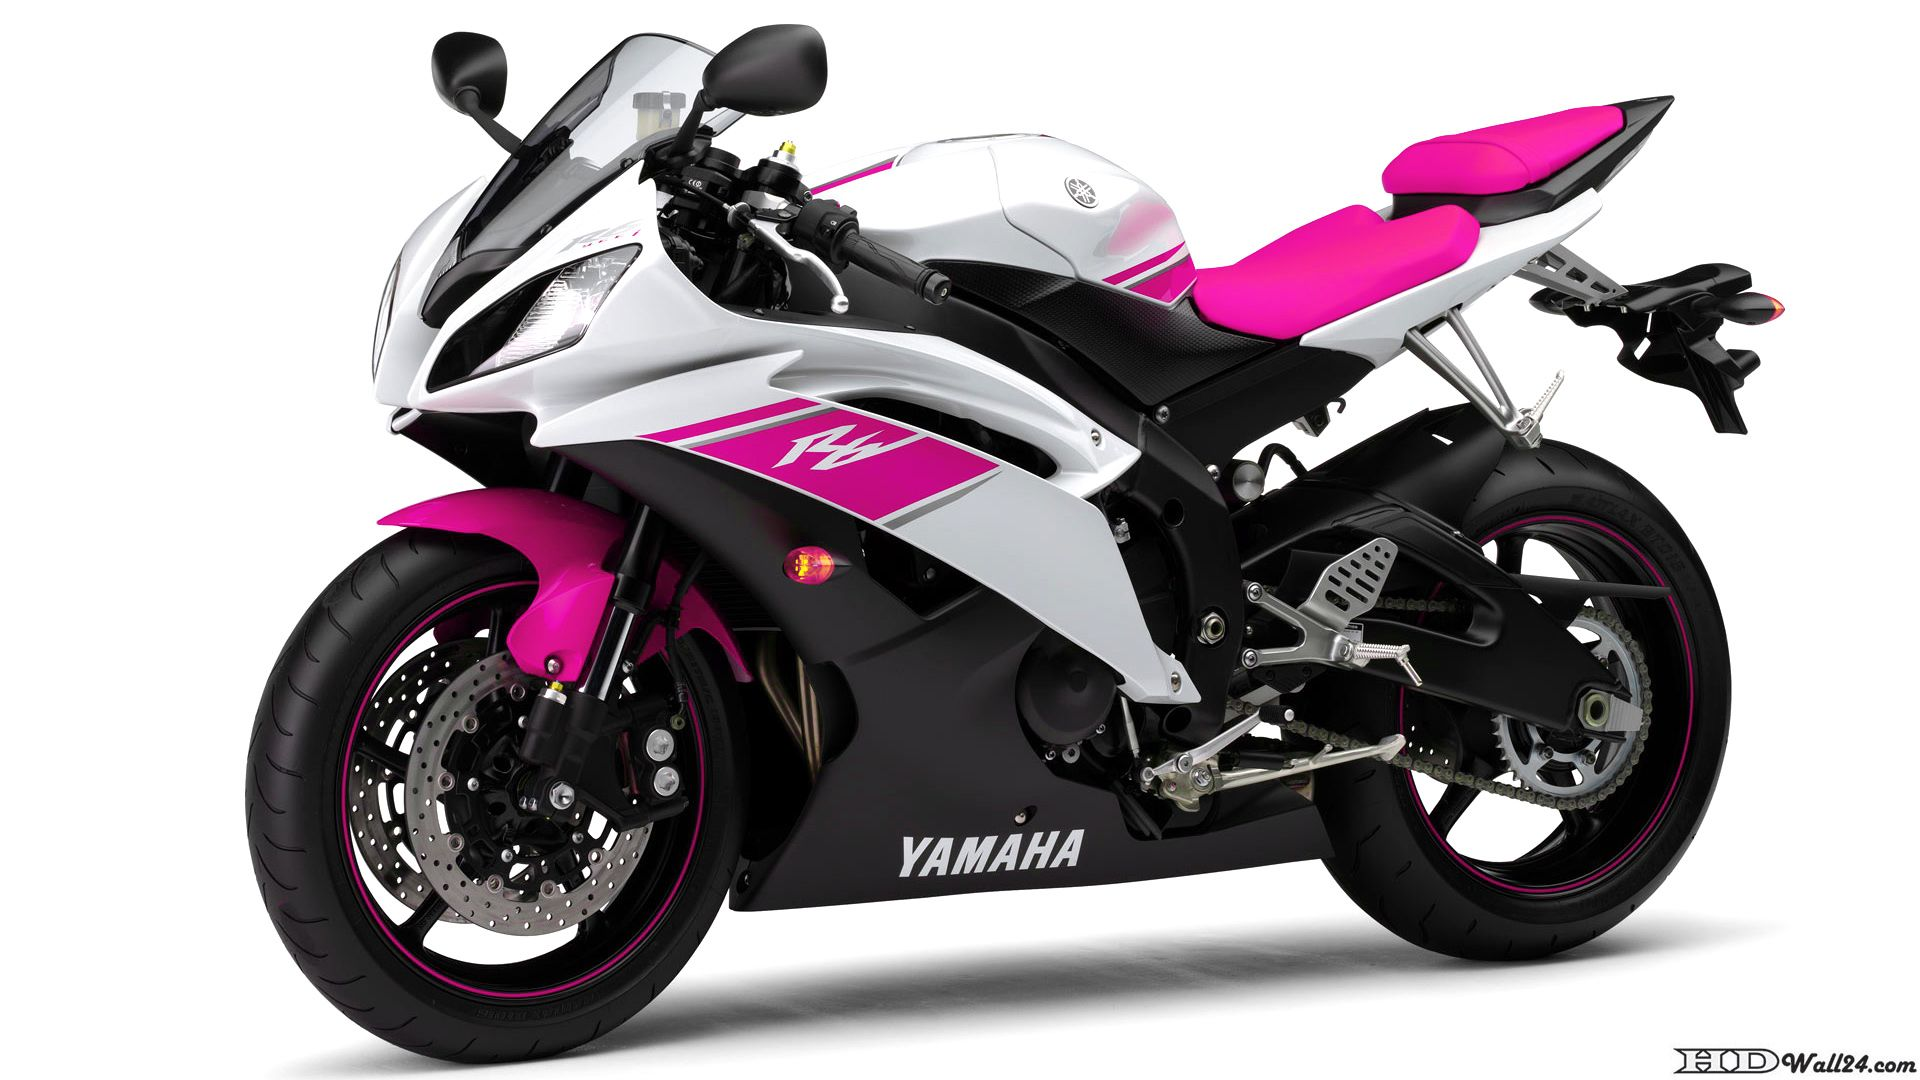 Yamaha Motor Bike Wallpapers Free Hd Wallpaper Download Yamaha